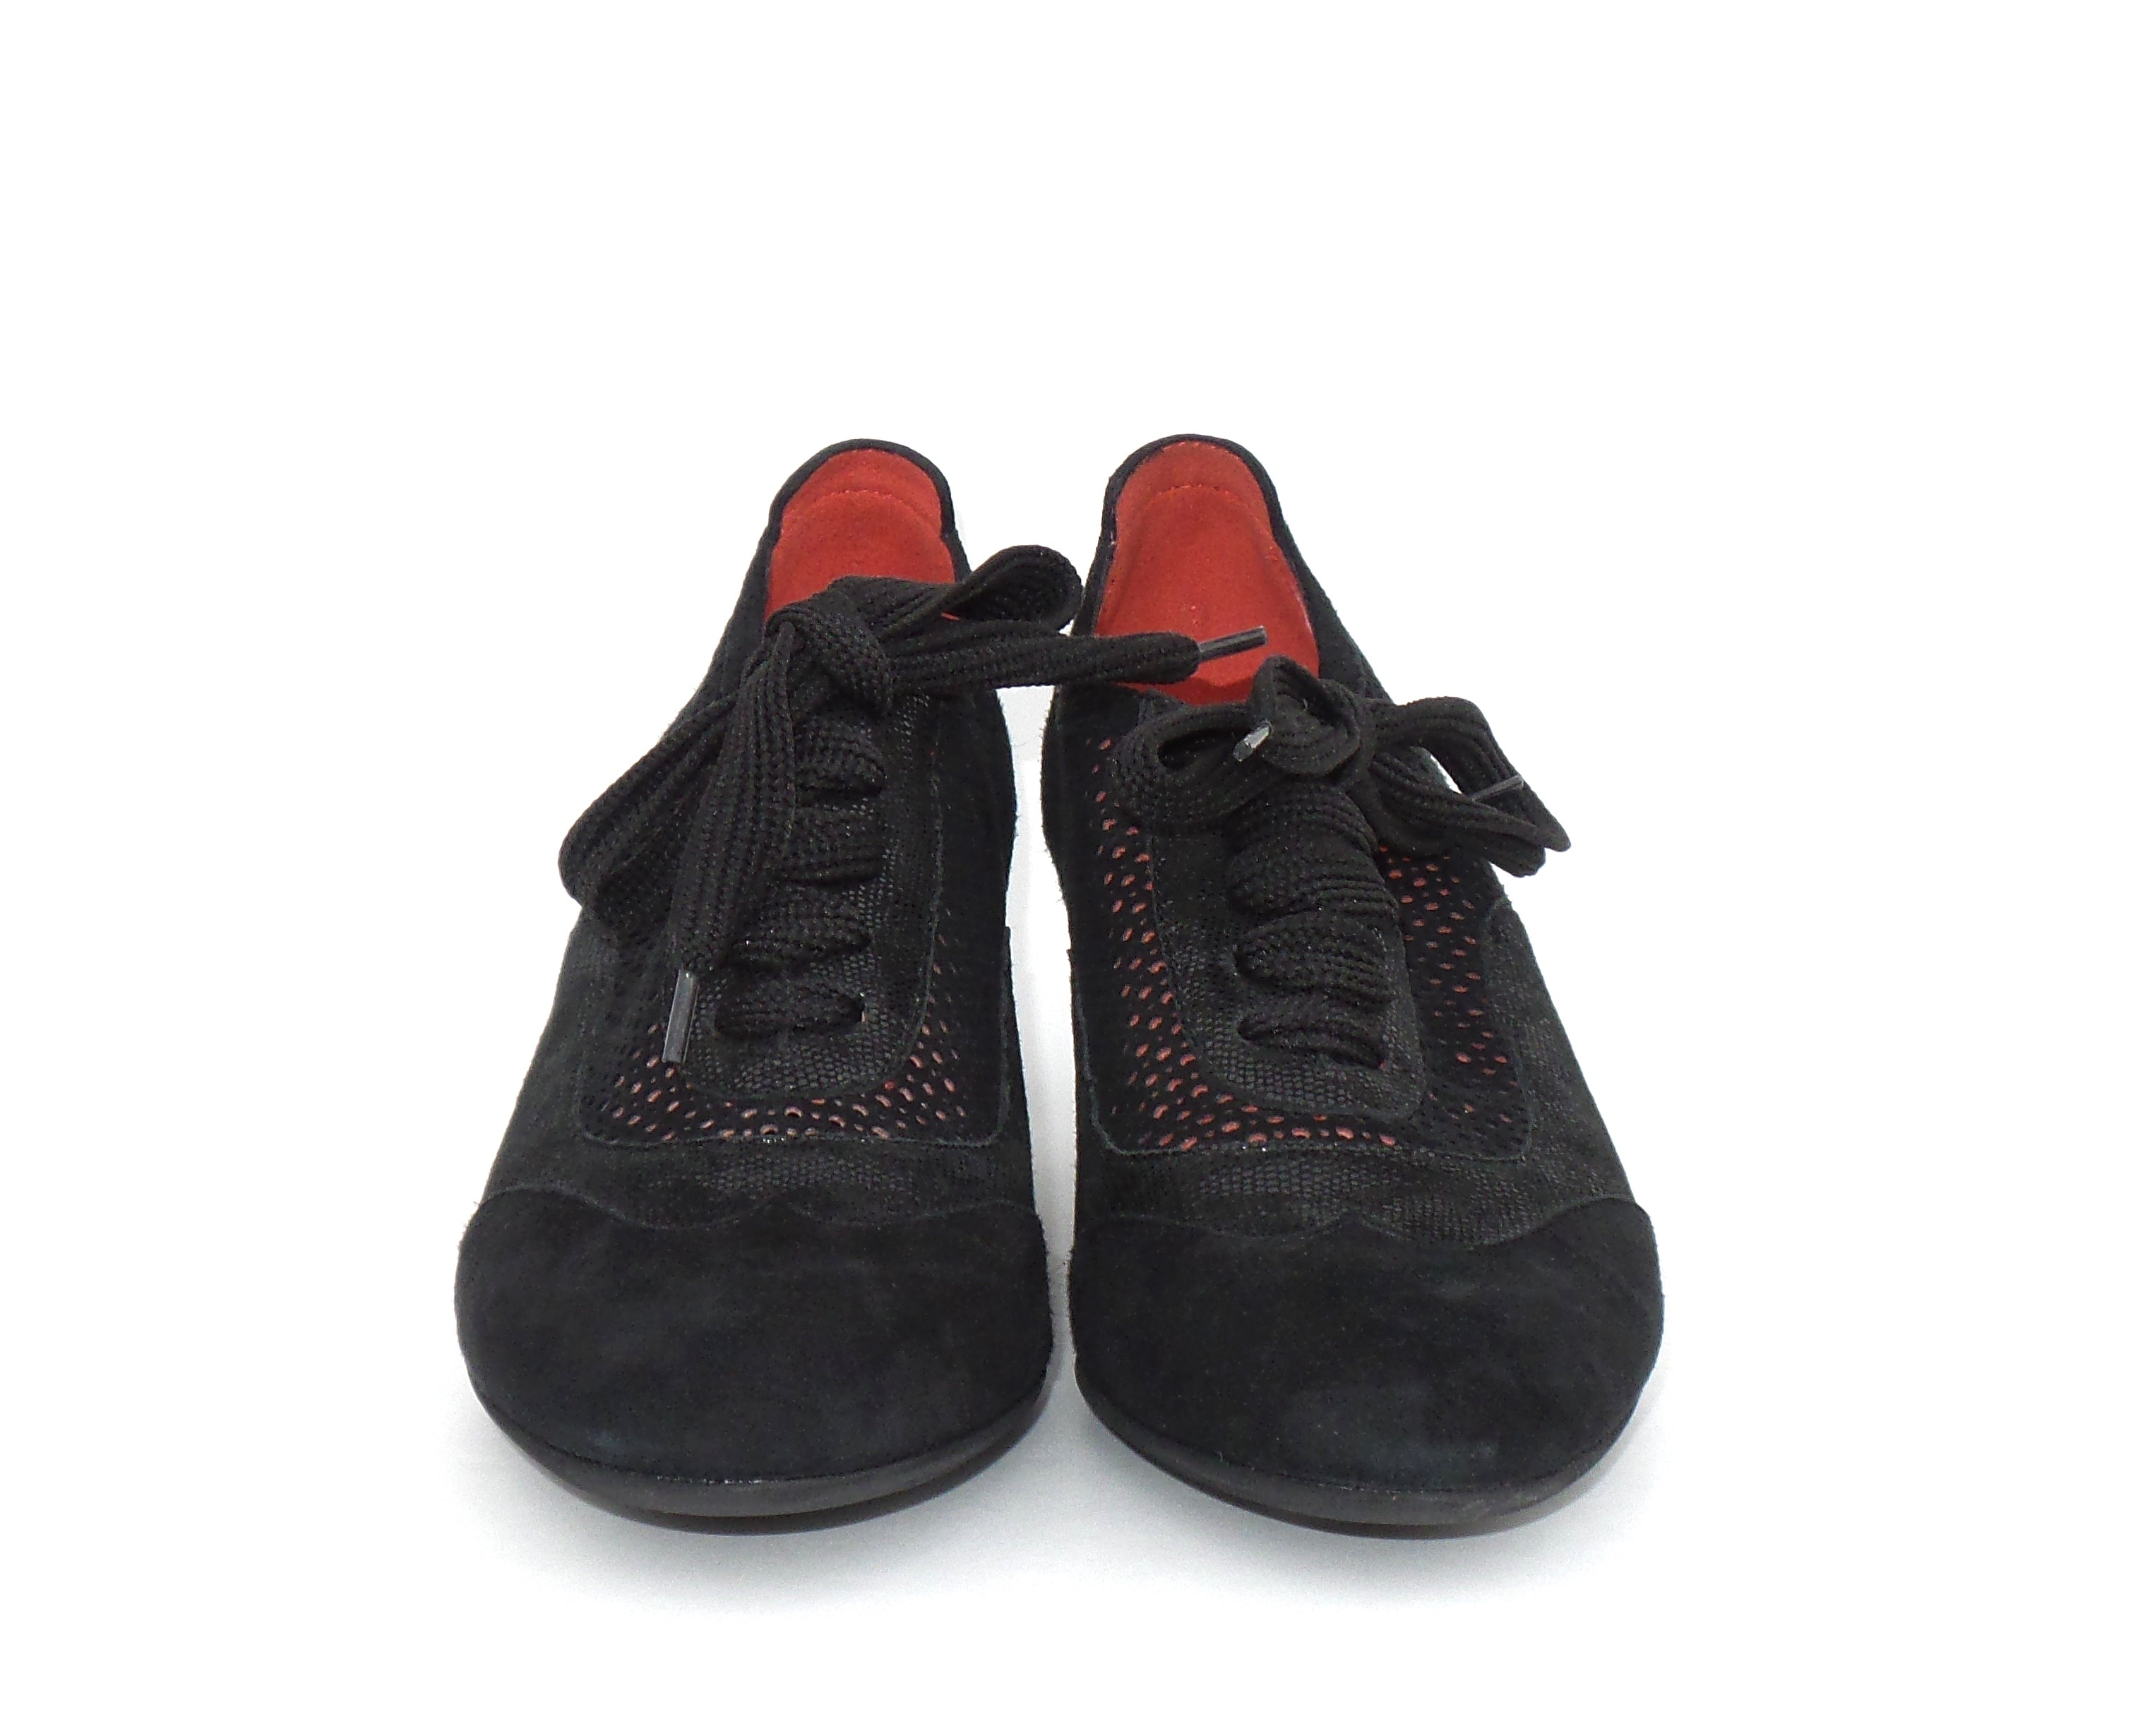 'Sold' PAS DE ROUGE C301 Black Perforated Suede Patent Lace Up Oxford Pumps 38.5 $450